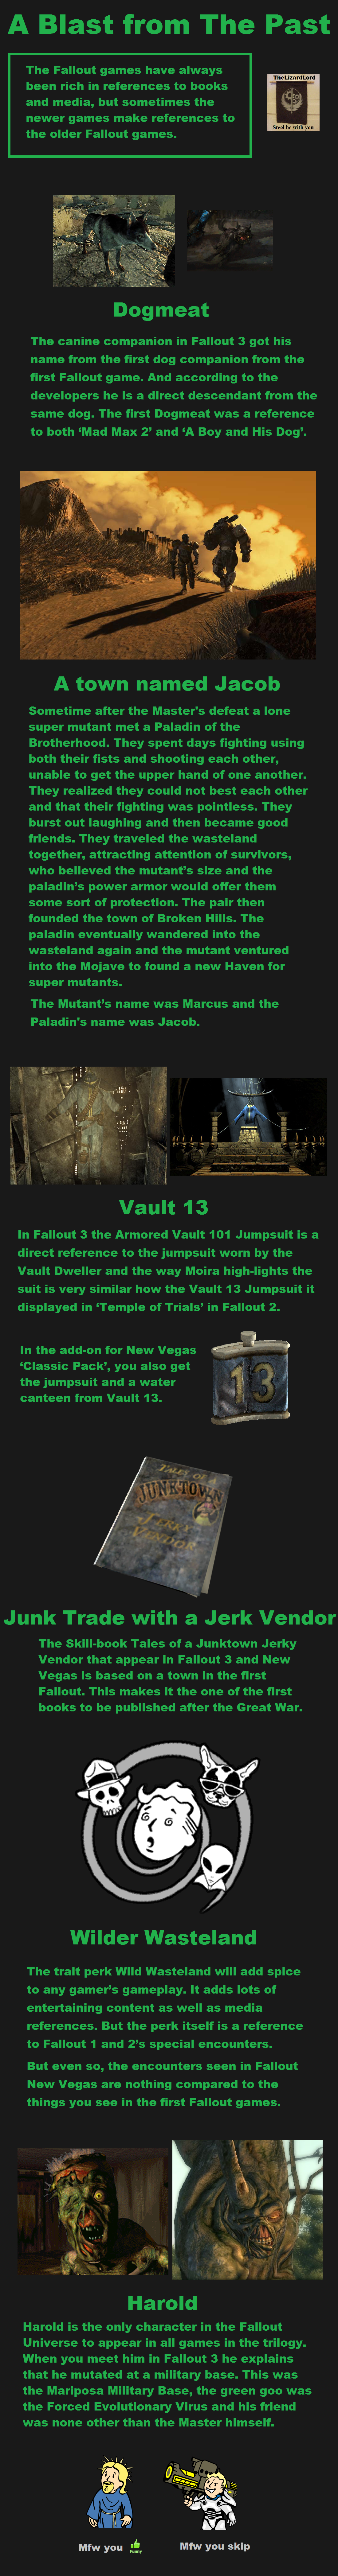 A blast from the past. Here I have assembled a fact comp for those of you who haven't played the first fallout games. Basically listing the references to you. A